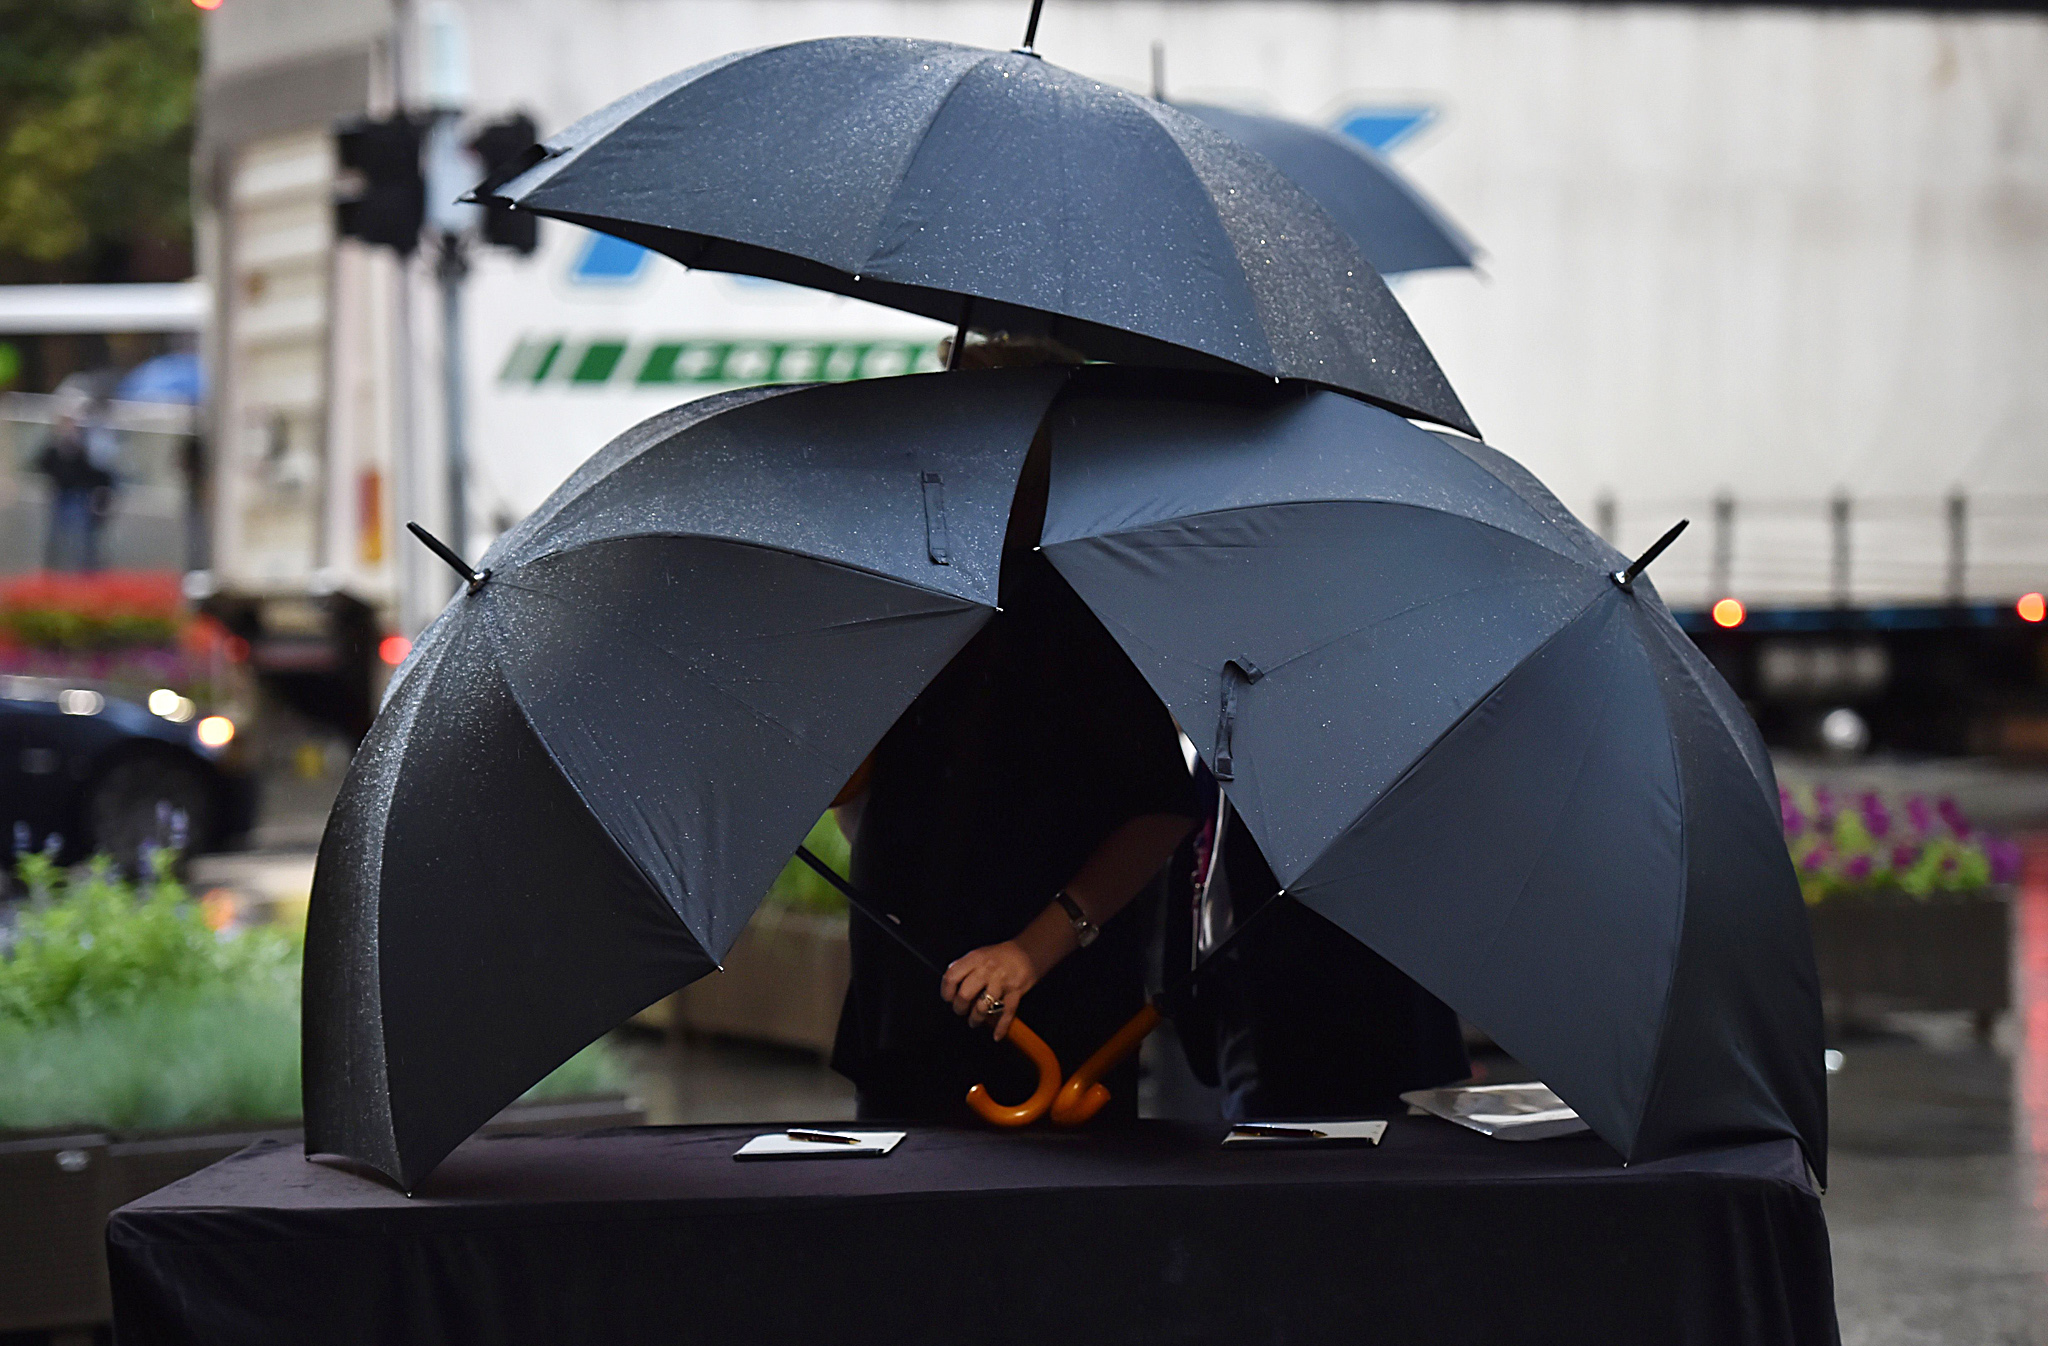 TOPSHOTS Umbrellas protect condolence bo...TOPSHOTS Umbrellas protect condolence books for victims of the siege at the Lindt Cafe where three people, including the lone gunman, died in December 2014, from the rain before being signed by visiting British foreign and defence secretaries in Sydney on February 2, 2015. The visit to the site was held ahead of annual Australia-UK security talks. AFP PHOTO / Peter PARKSPETER PARKS/AFP/Getty Images